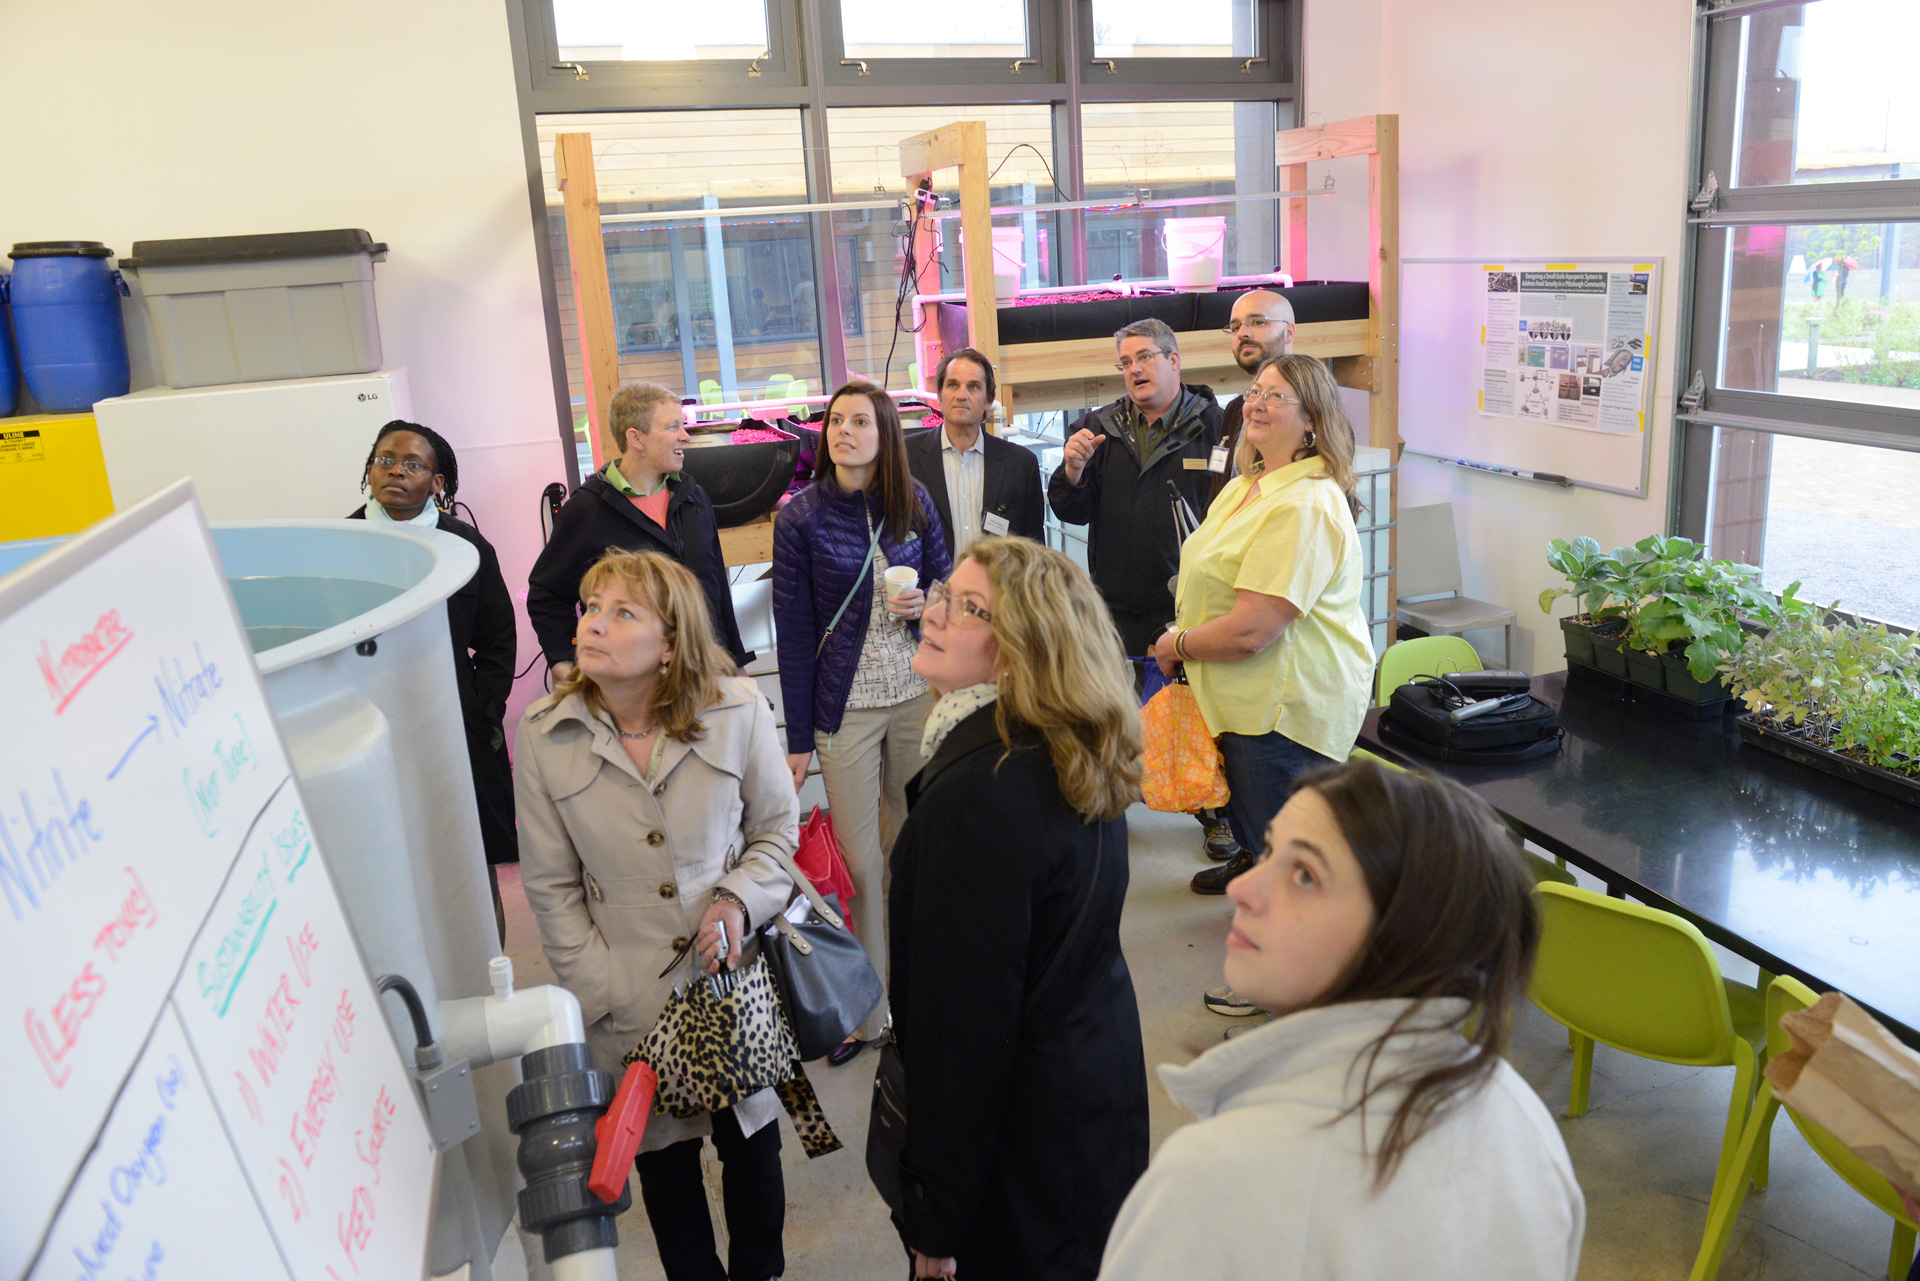 Roy Weitzell, PhD (back row, second from right) leads a tour of the Aquaculture Lab.